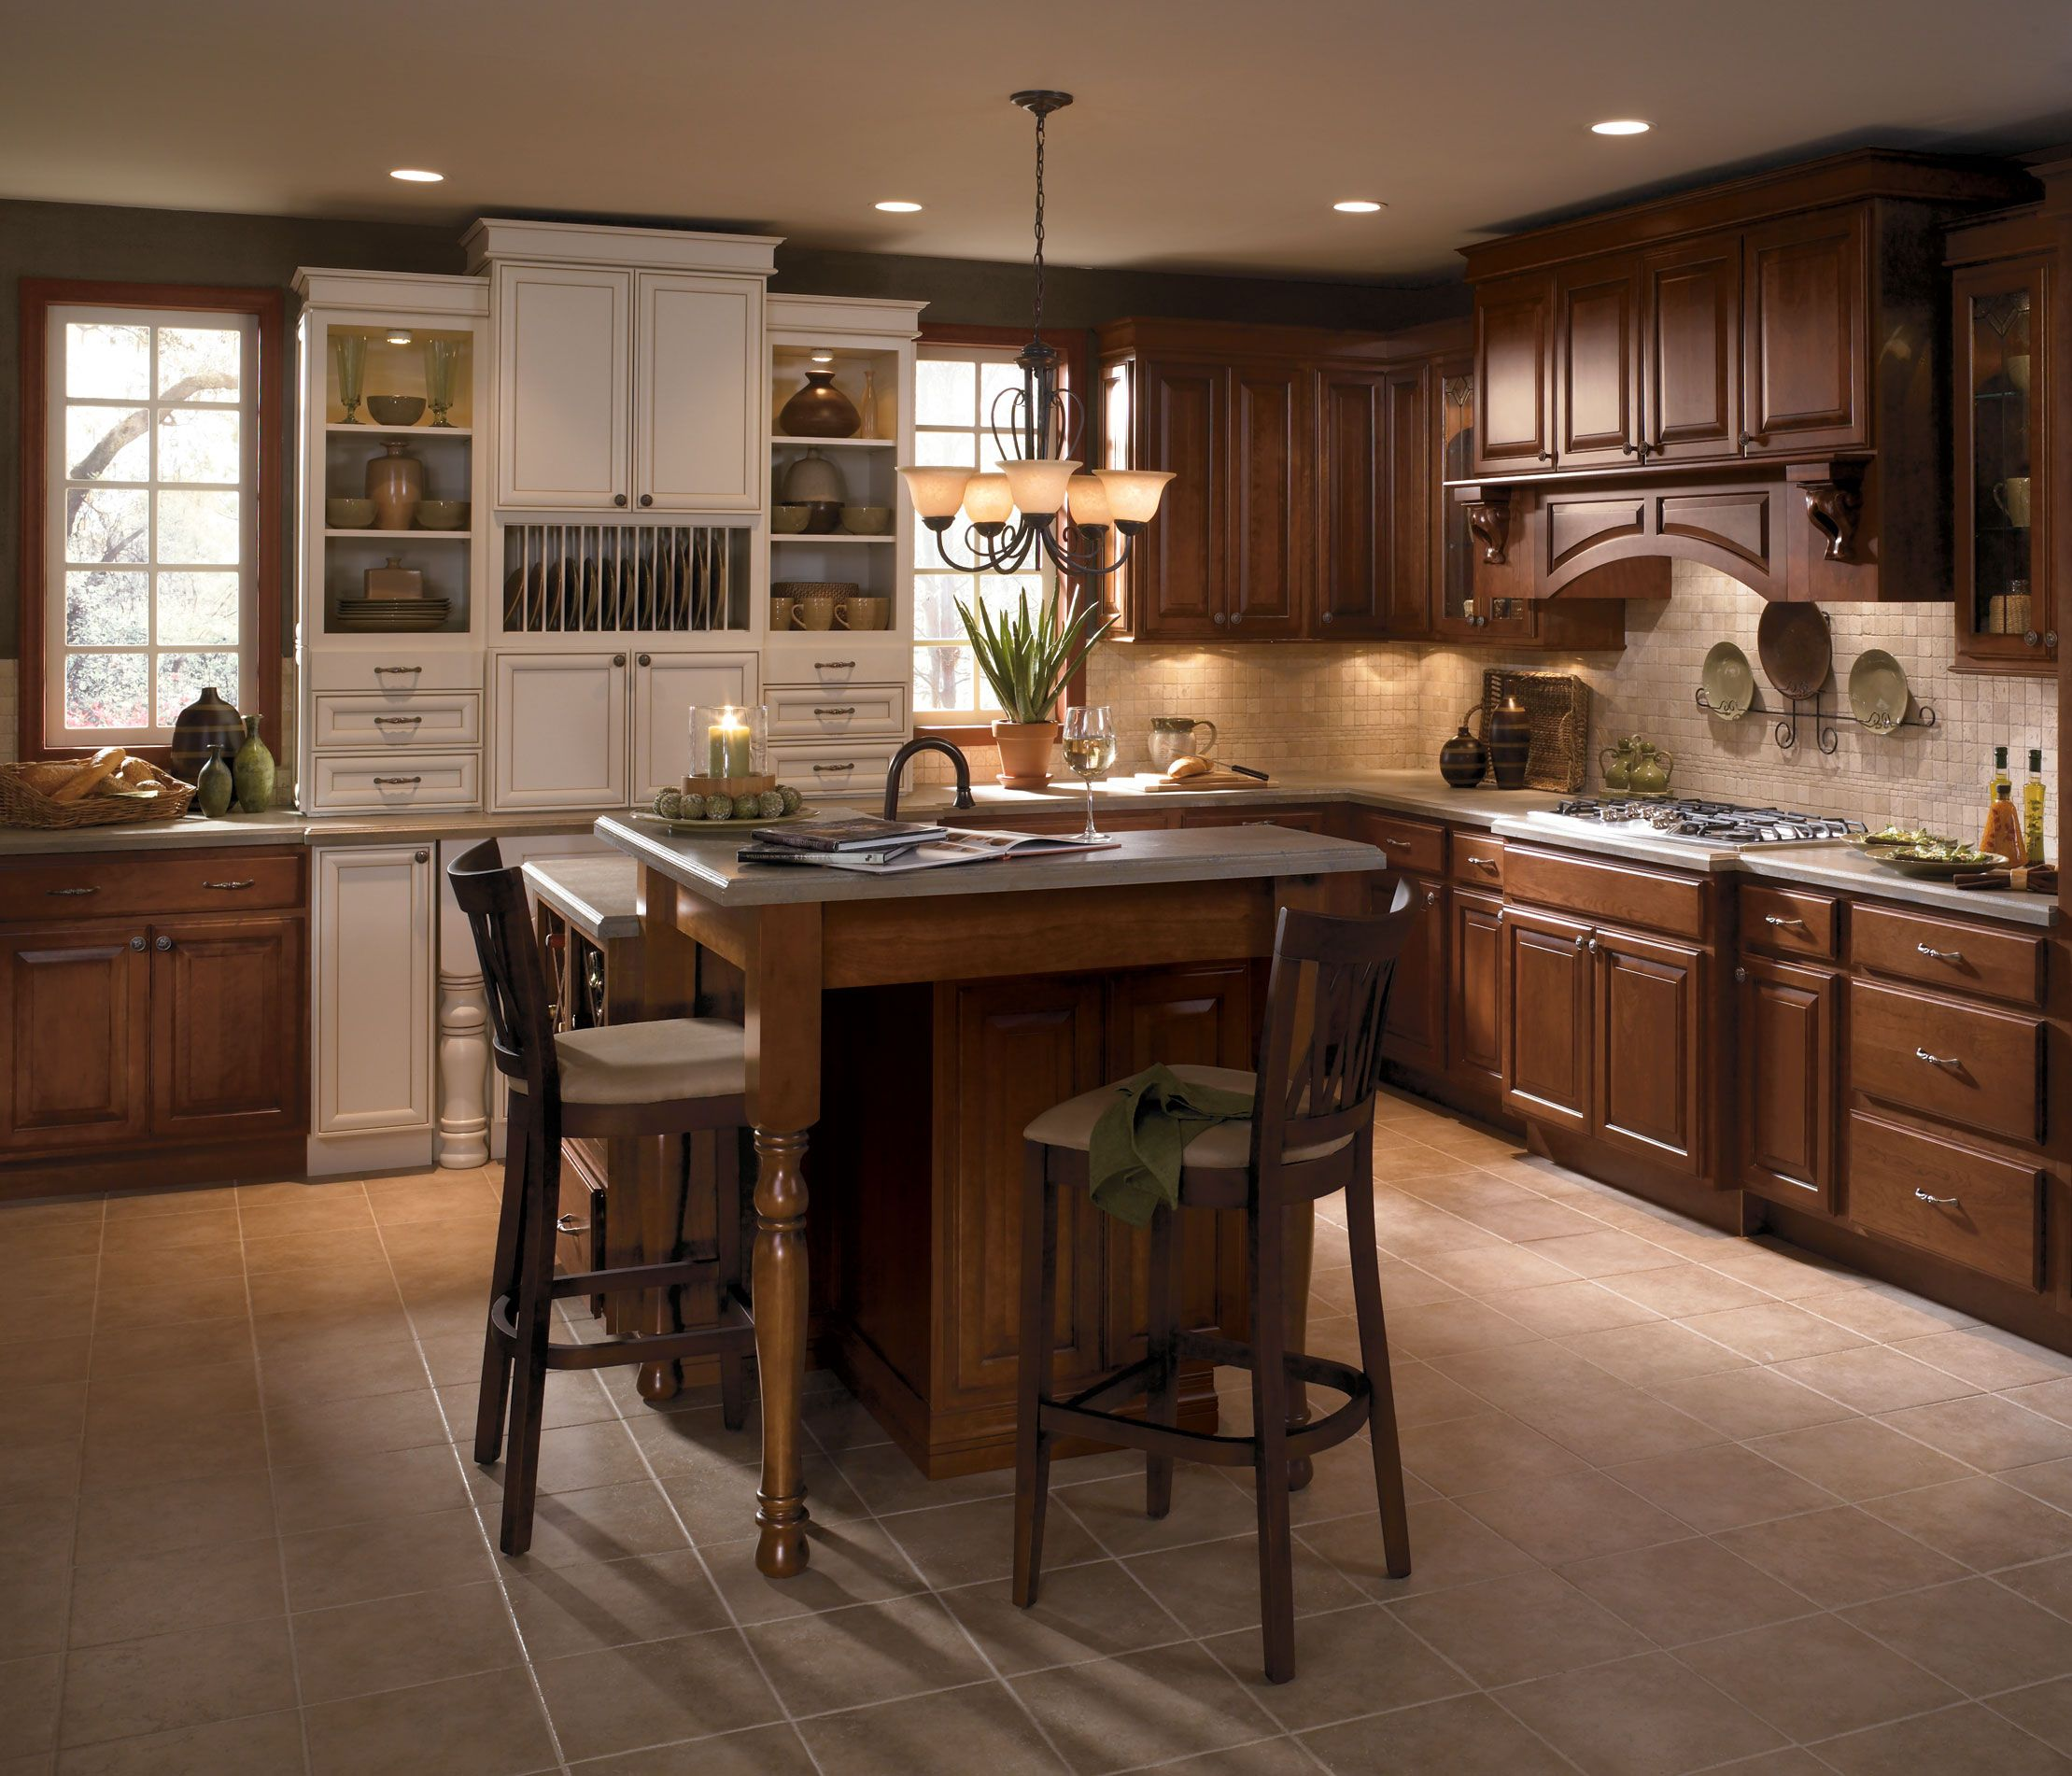 Kitchen Cabinets Bathroom Cabinetry Masterbrand Semi Custom Kitchen Cabinets Custom Kitchen Cabinets Wood Kitchen Cabinets